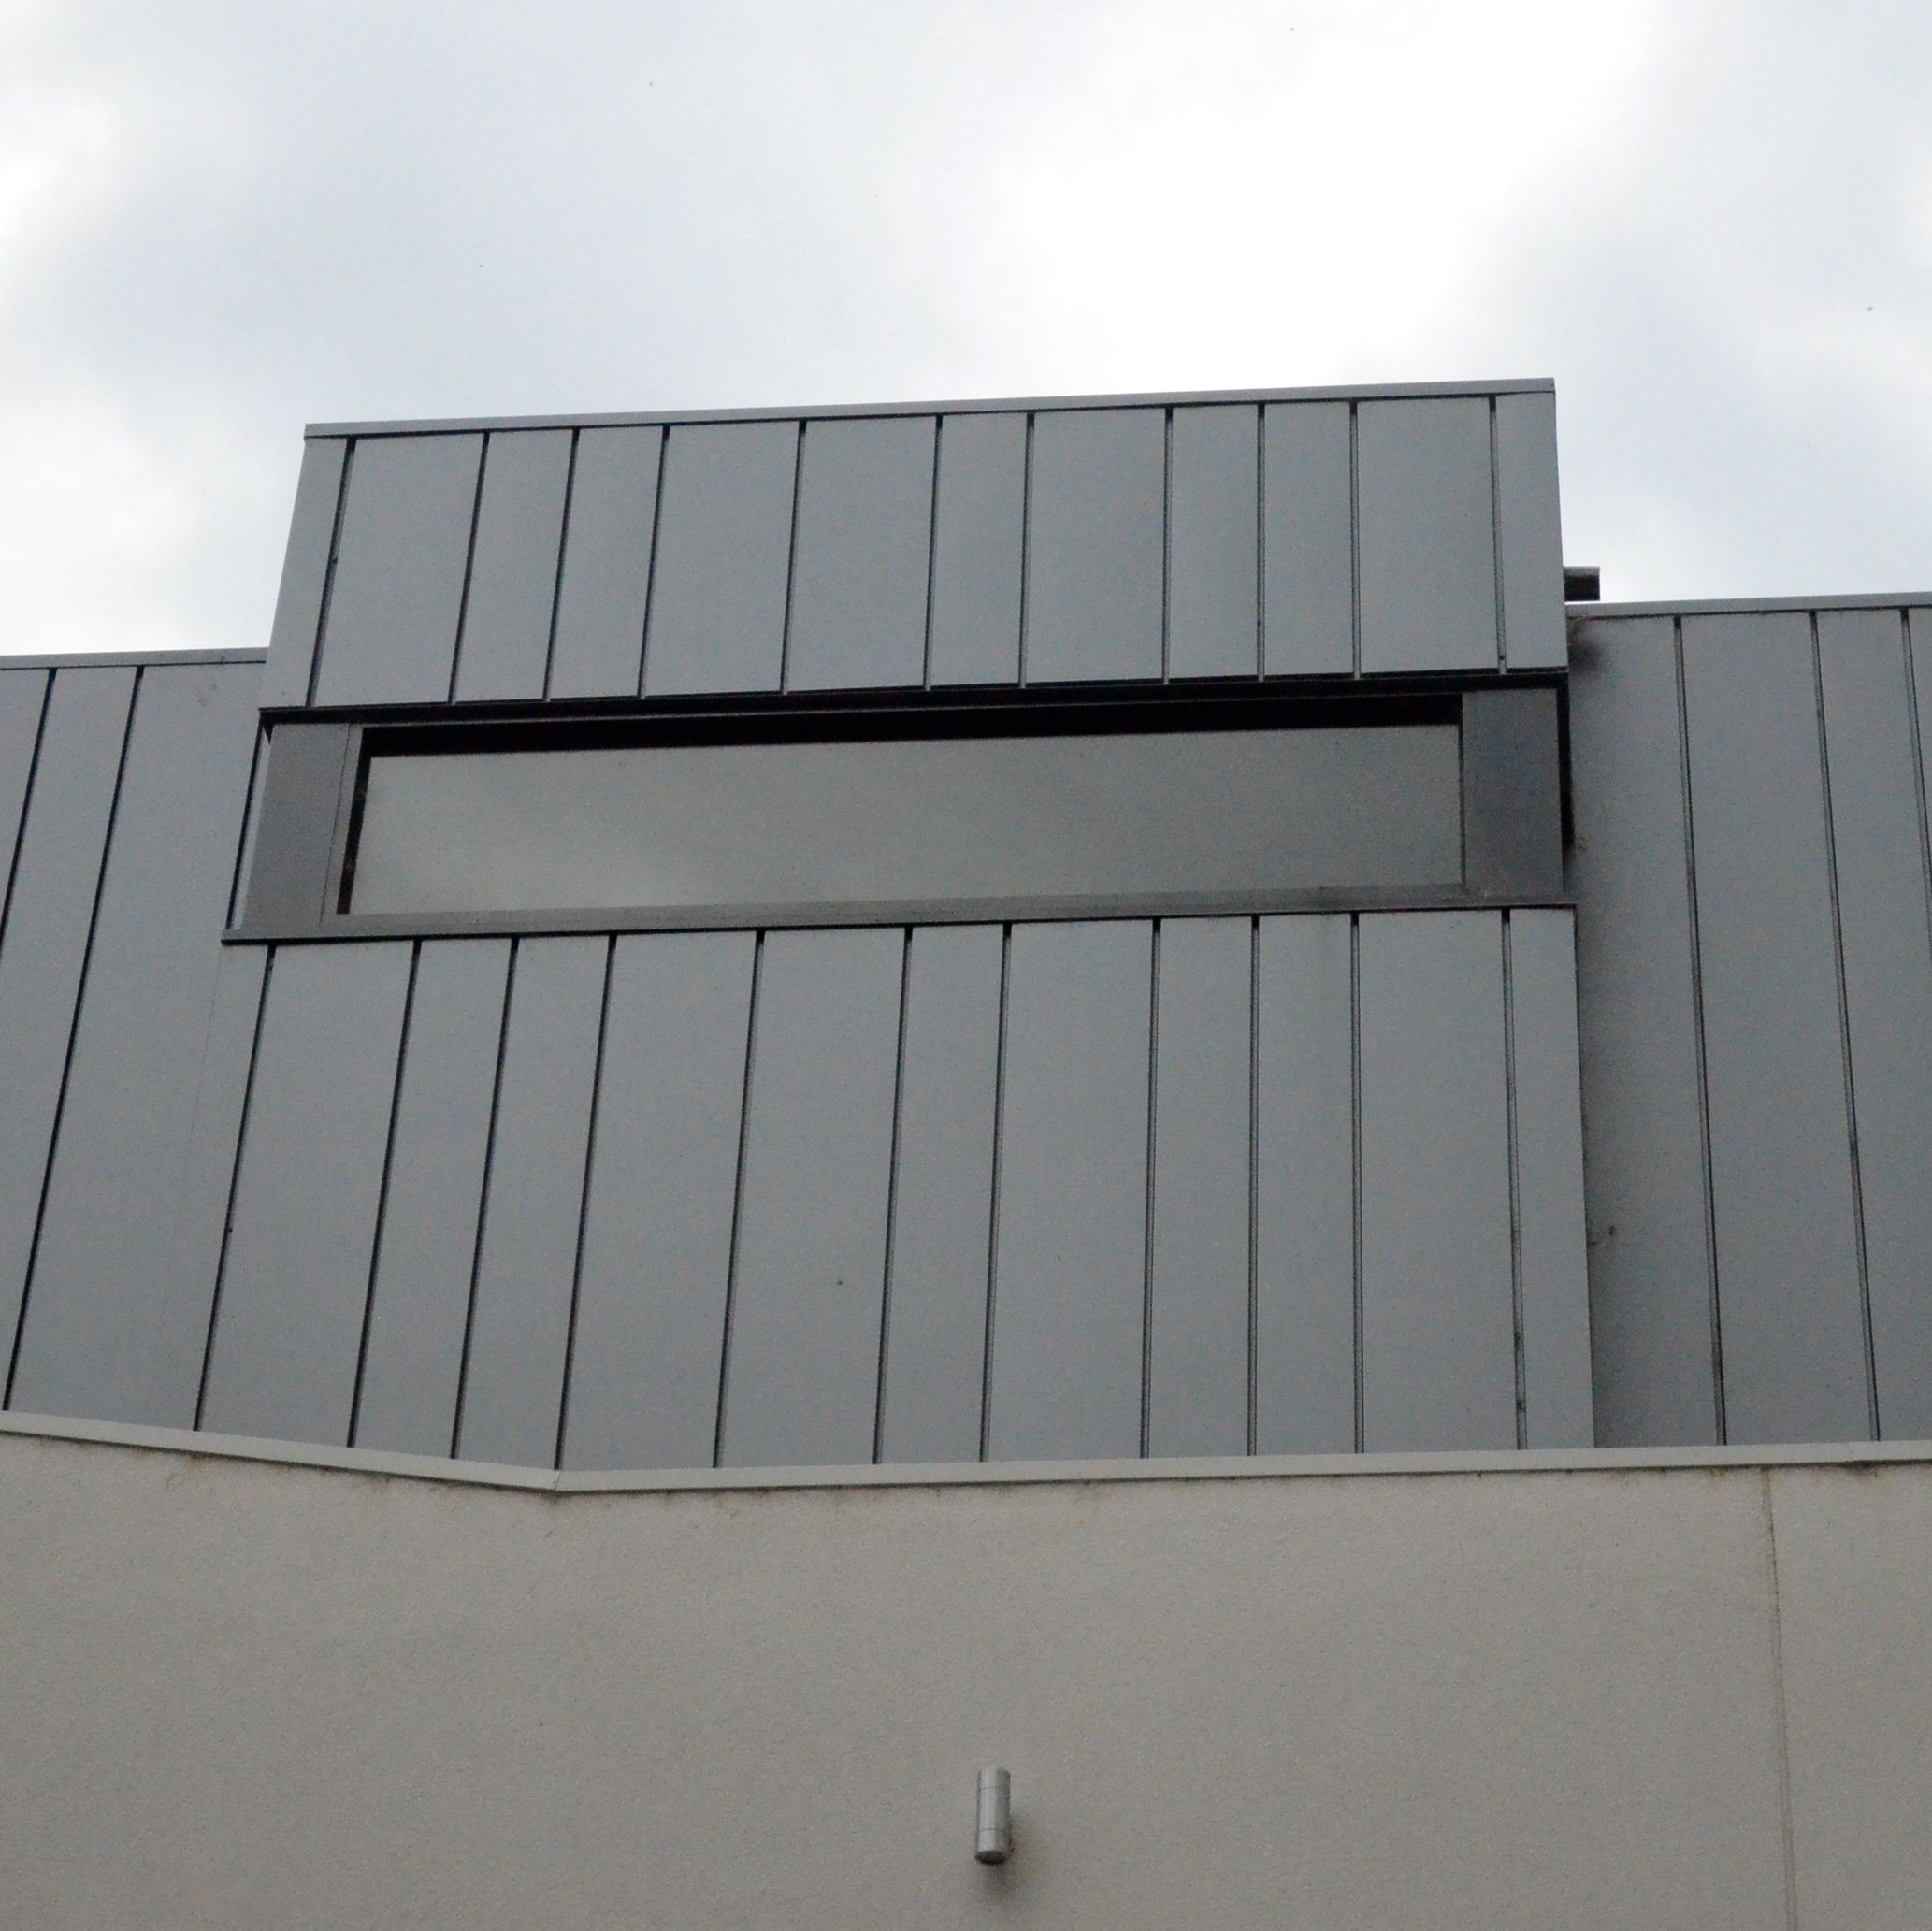 Design Cladding We Install A Range Of Metal Cladding Systems Using Zinc Copper Aluminium